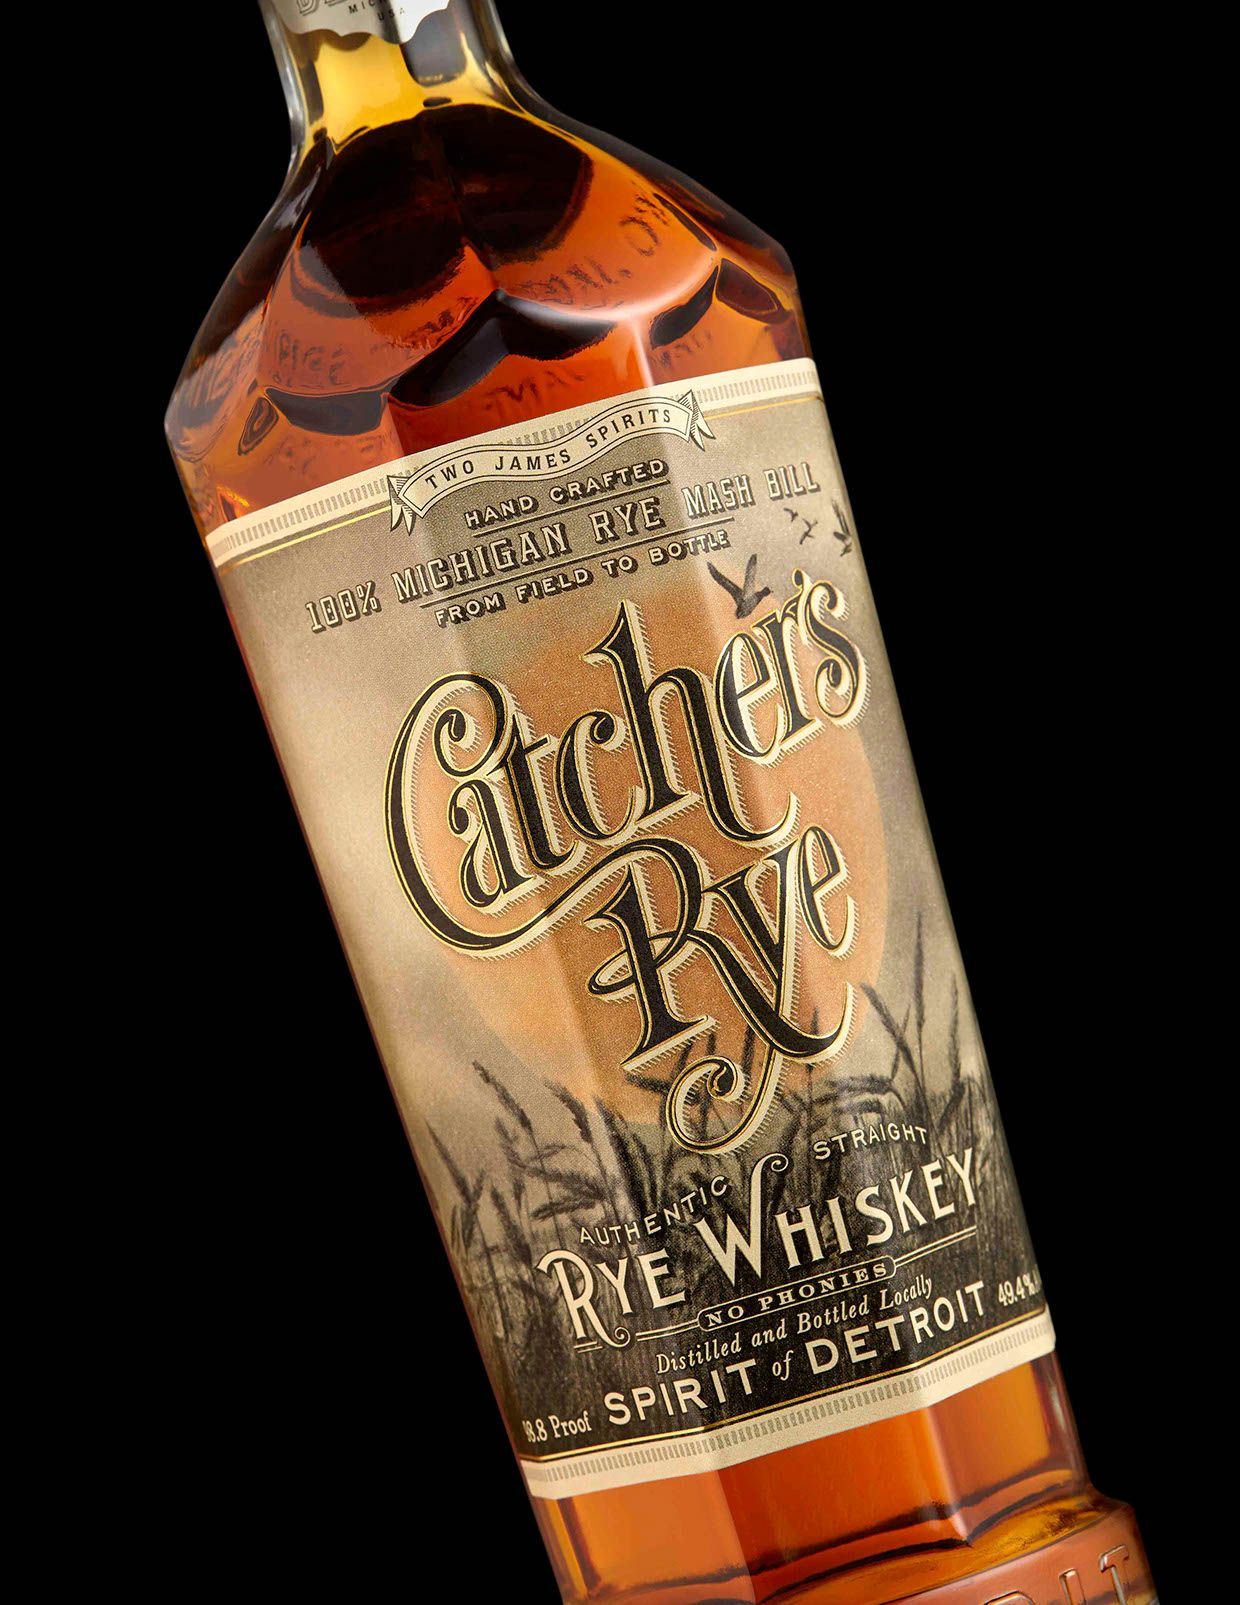 catcher in the rye alcohol